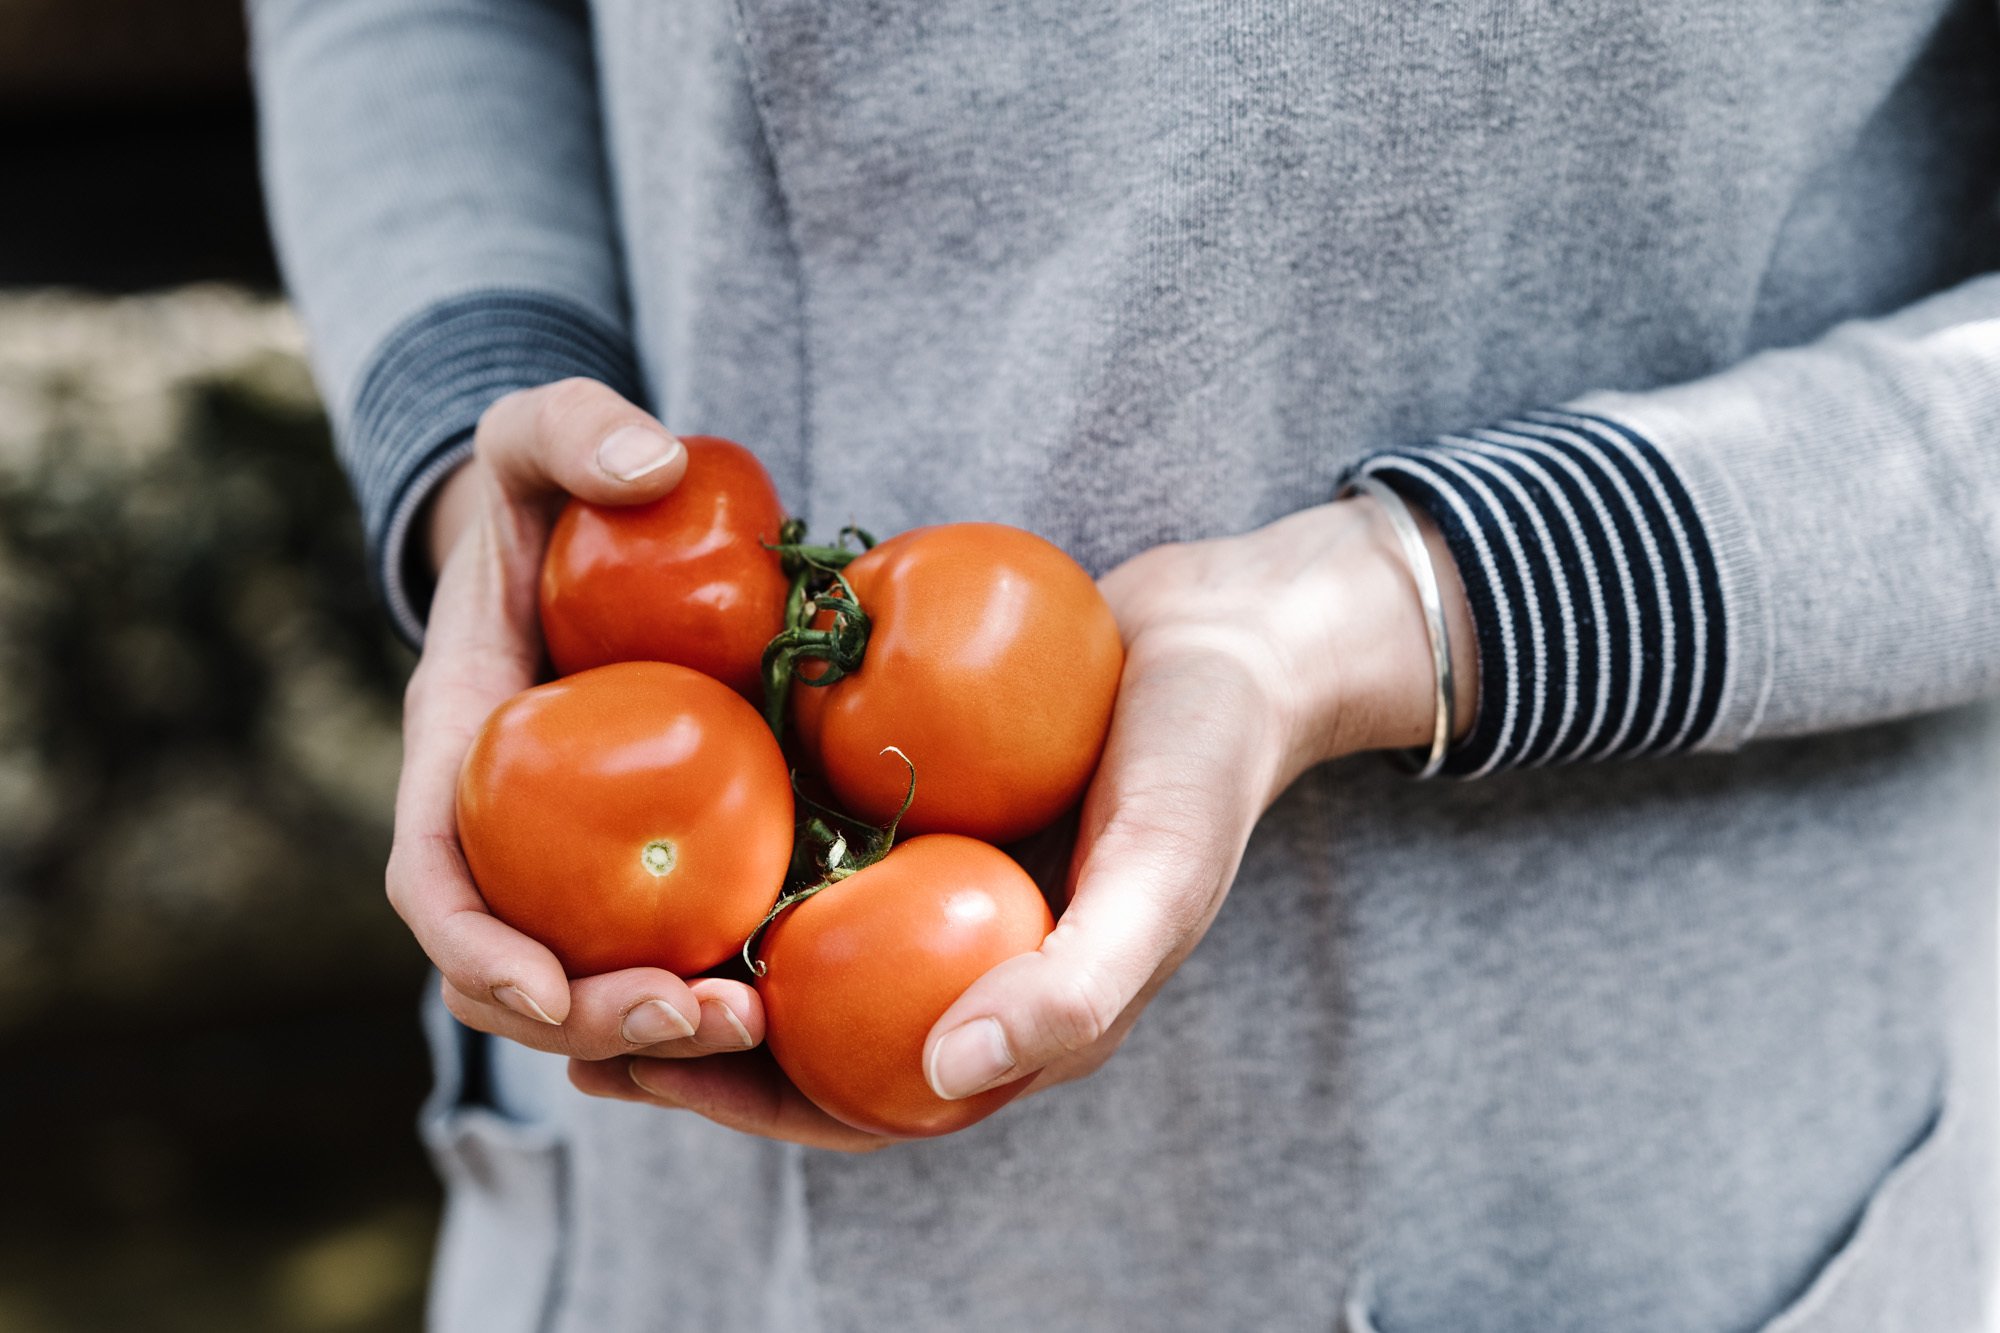 woman holding tomatoes - does diet affect fertility? monash ivf